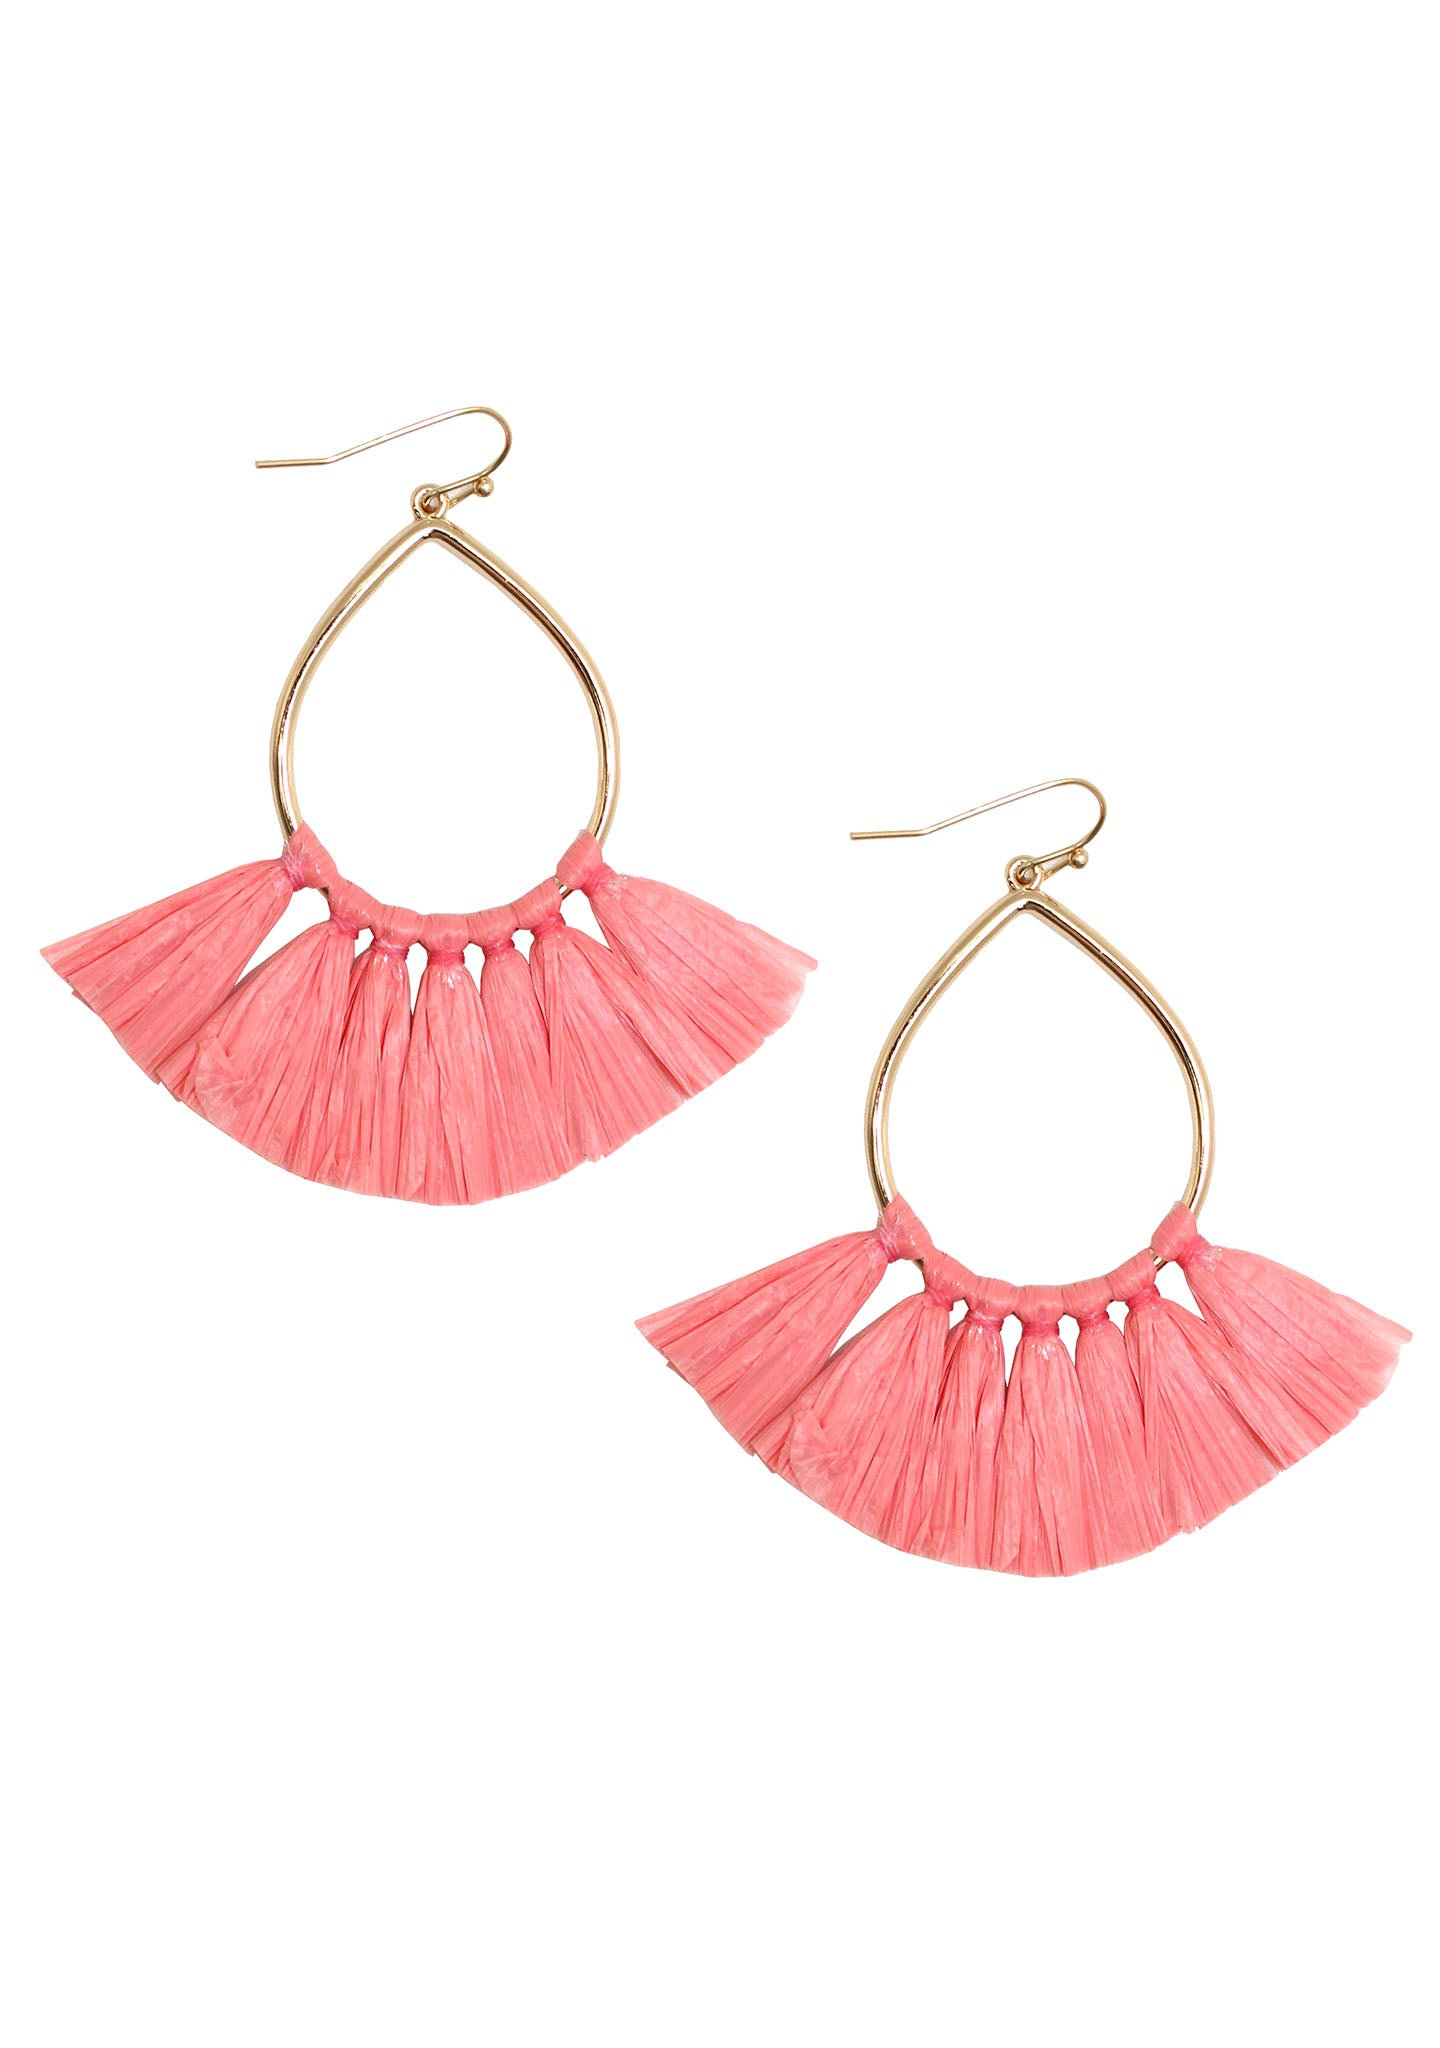 Paradise Cha Cha Earring in Coral